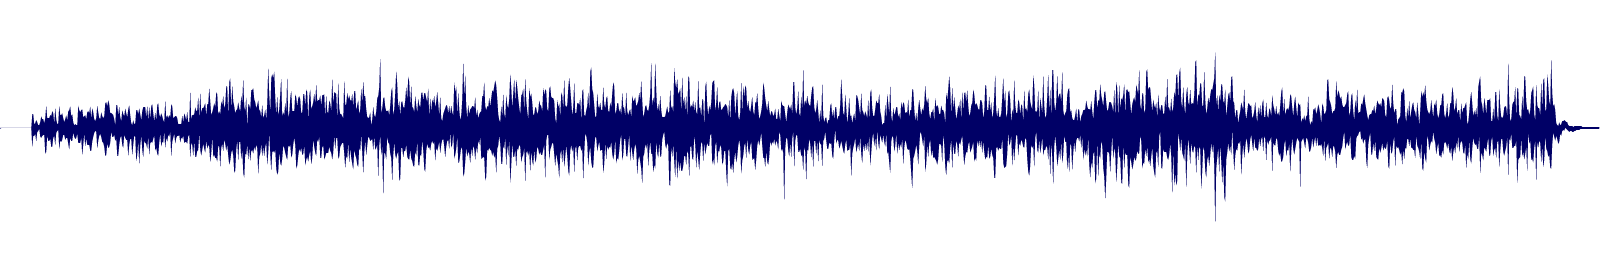 waveform of track #105746